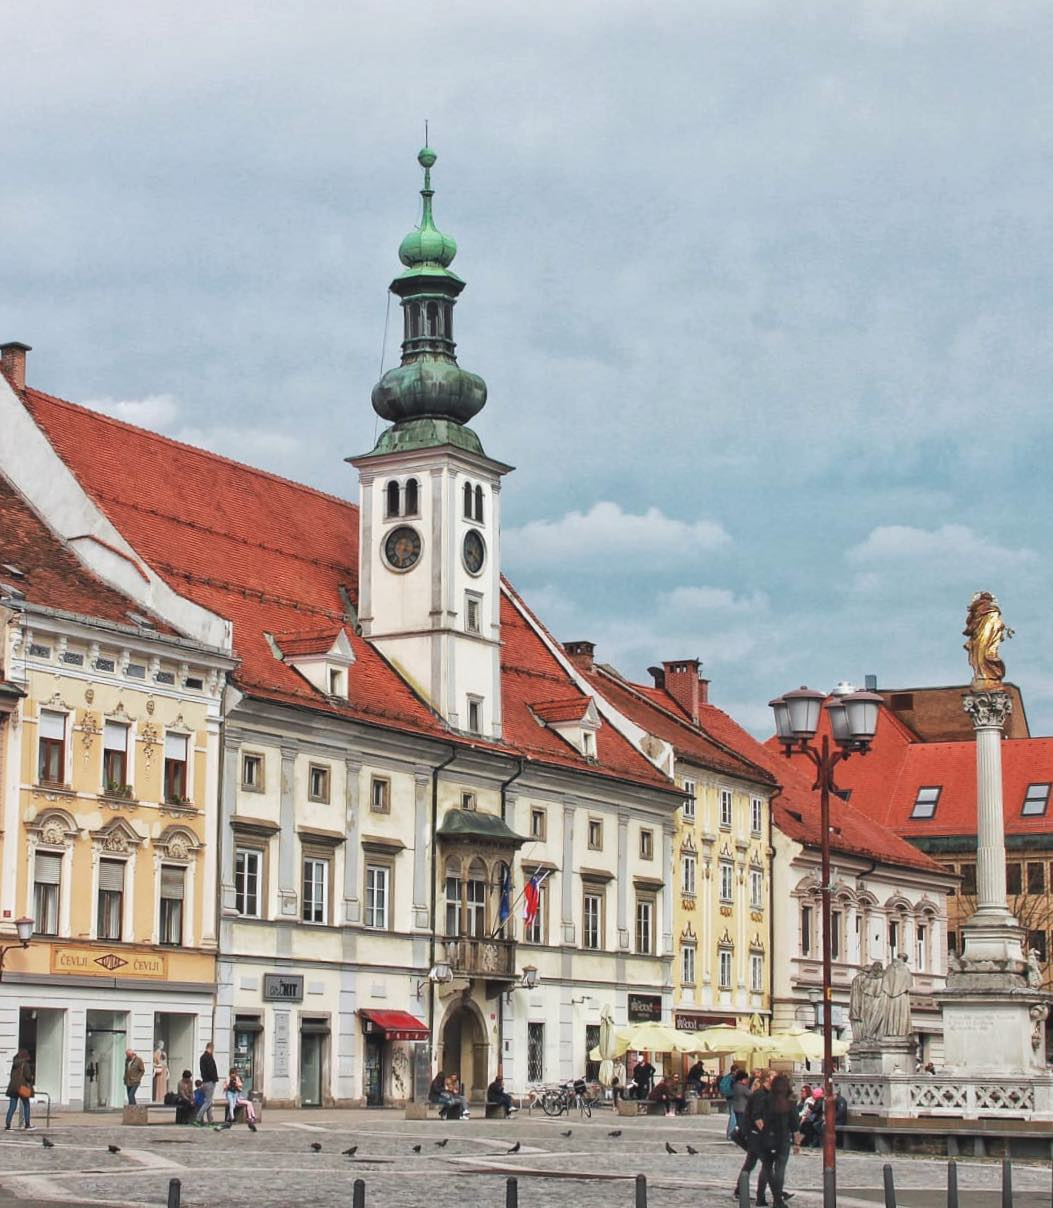 Exploring Slovenian Styria?  . Maribor is so charming, home to the oldest vine in the world and Slovenia's second largest city.  History and art lovers should see the remains of the city wall and medieval towers, the Main Square with the City Hall, the National Liberation Museum, the Regional Museum and the Maribor Art Gallery, Franciscan Church, Cathedral and Maribor Synagogue. The city is nestled among picturesque hills and vineyards, yet another of its distinctive features. . Thanks @lifeisjovial for sharing your photo with #ifeelsLOVEnia.